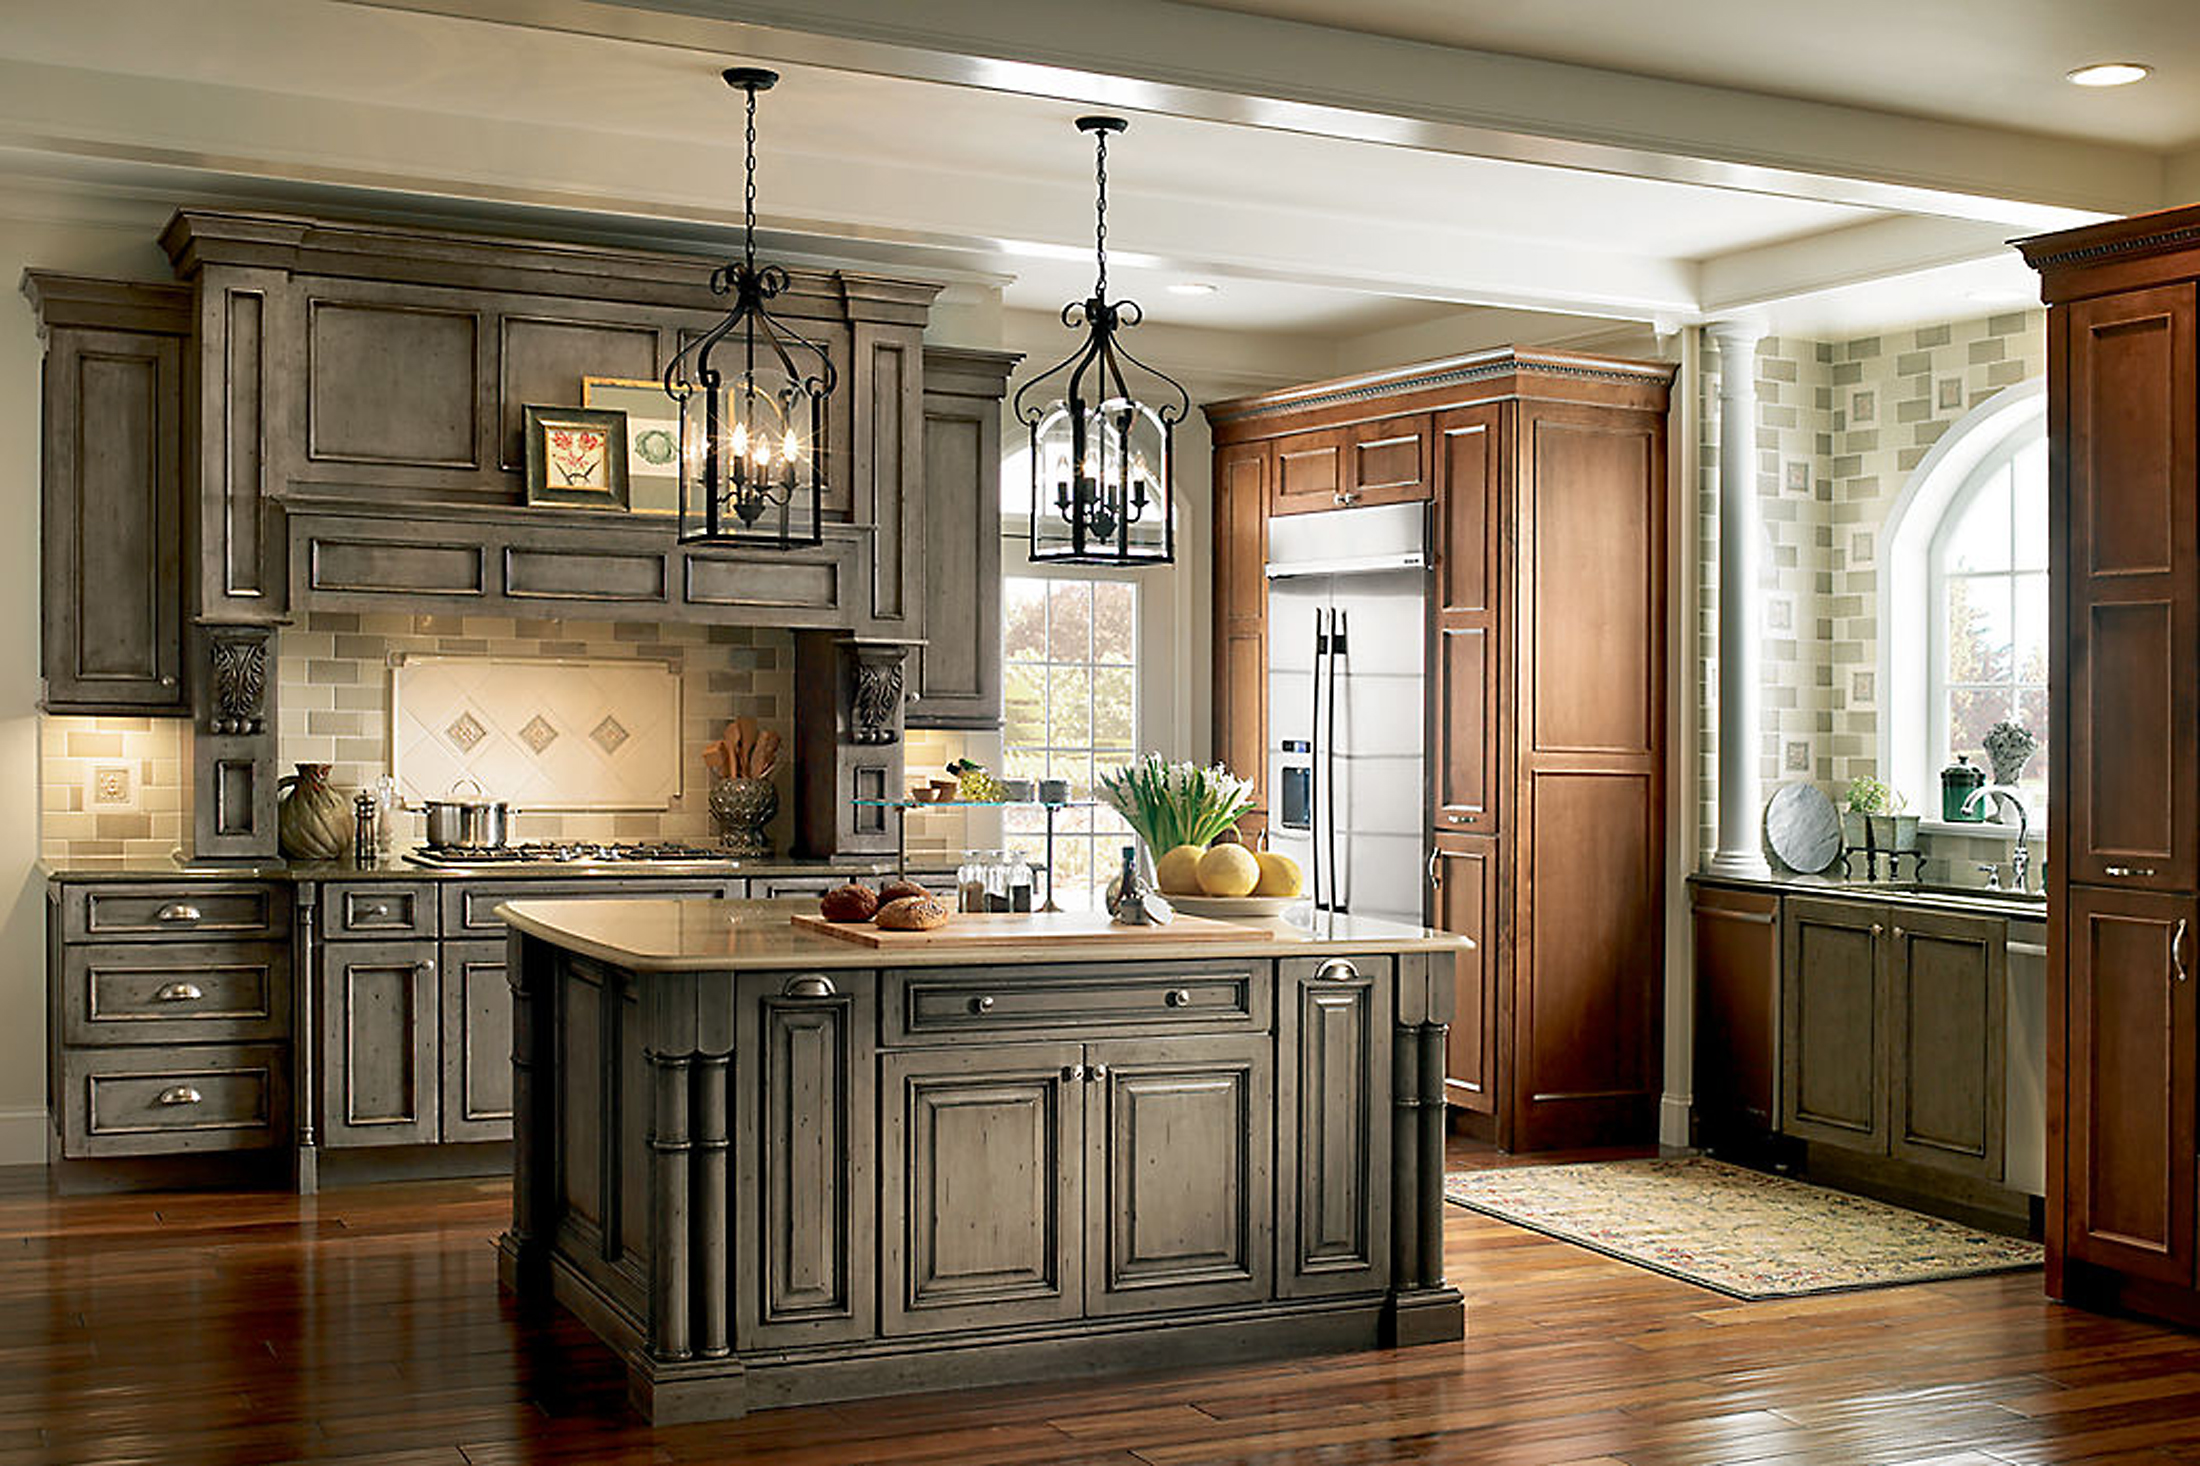 Today, Designers And Manufacturers Are Showcasing Spaces With Brightly Colored  Cabinetry That Livens Up The